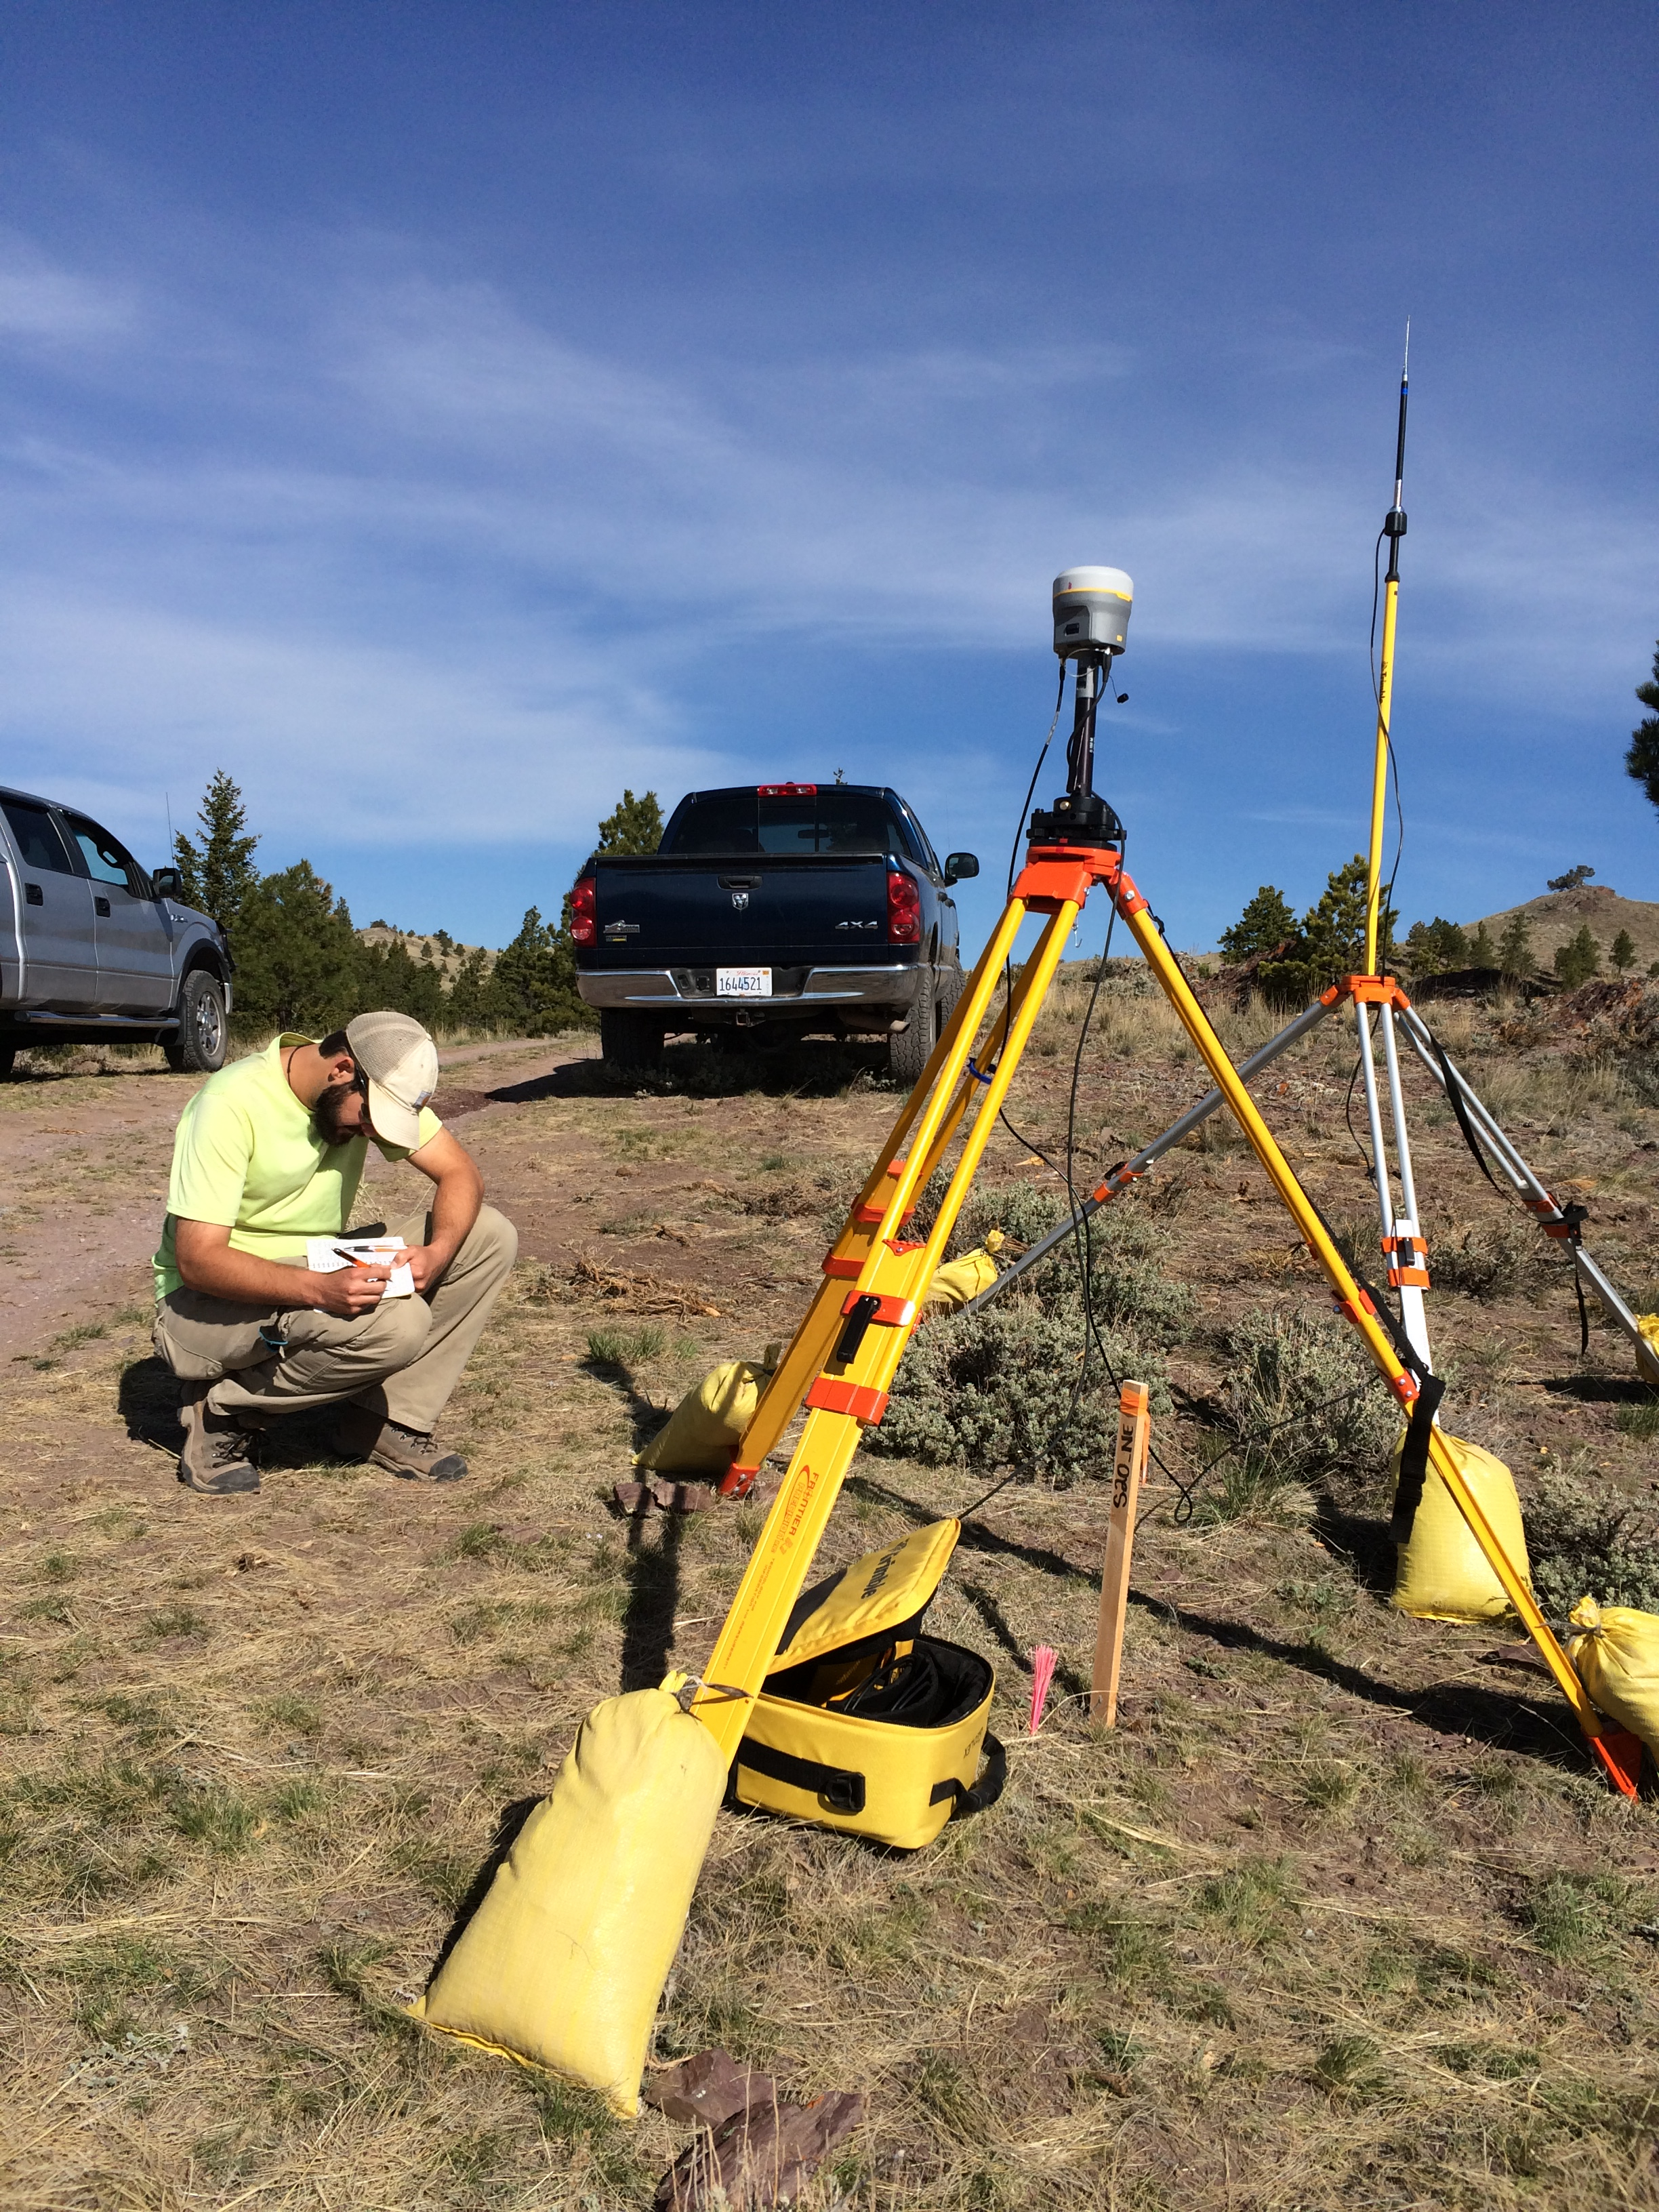 Scott sets up the Trimble R10 base station and repeater for accurate GPS position control.